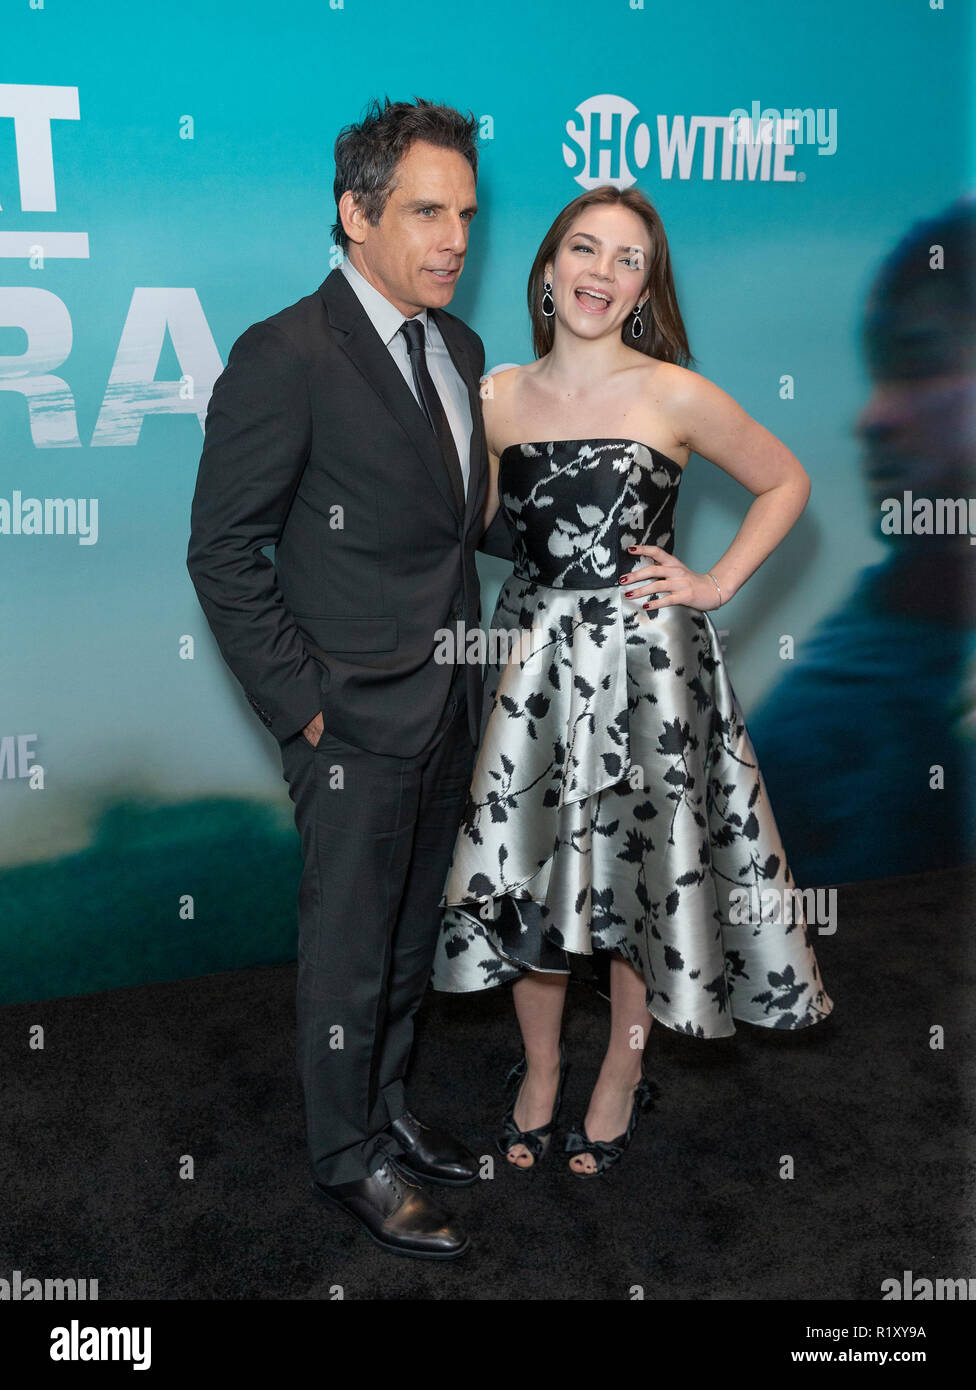 New York, États-Unis. 14Th Nov, 2018. Ben Stiller et Ella Olivia Stiller assister à la première de la série de Showtime s'échapper à Dannemora au Alice Tully Hall du Lincoln Center Crédit : Lev Radin/Pacific Press/Alamy Live News Banque D'Images